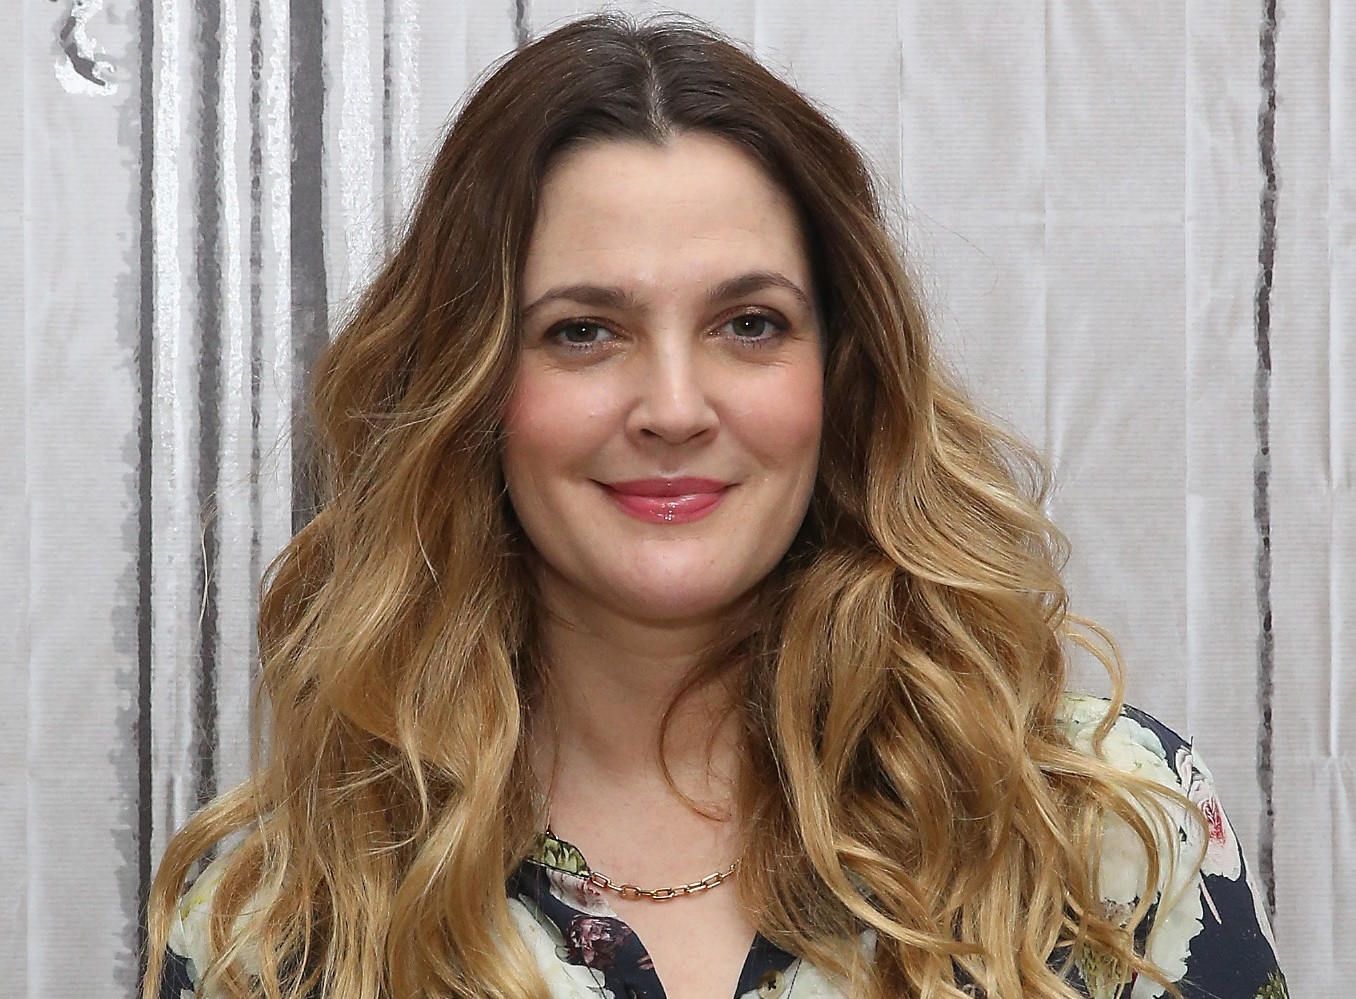 drew barrymore dating app raya